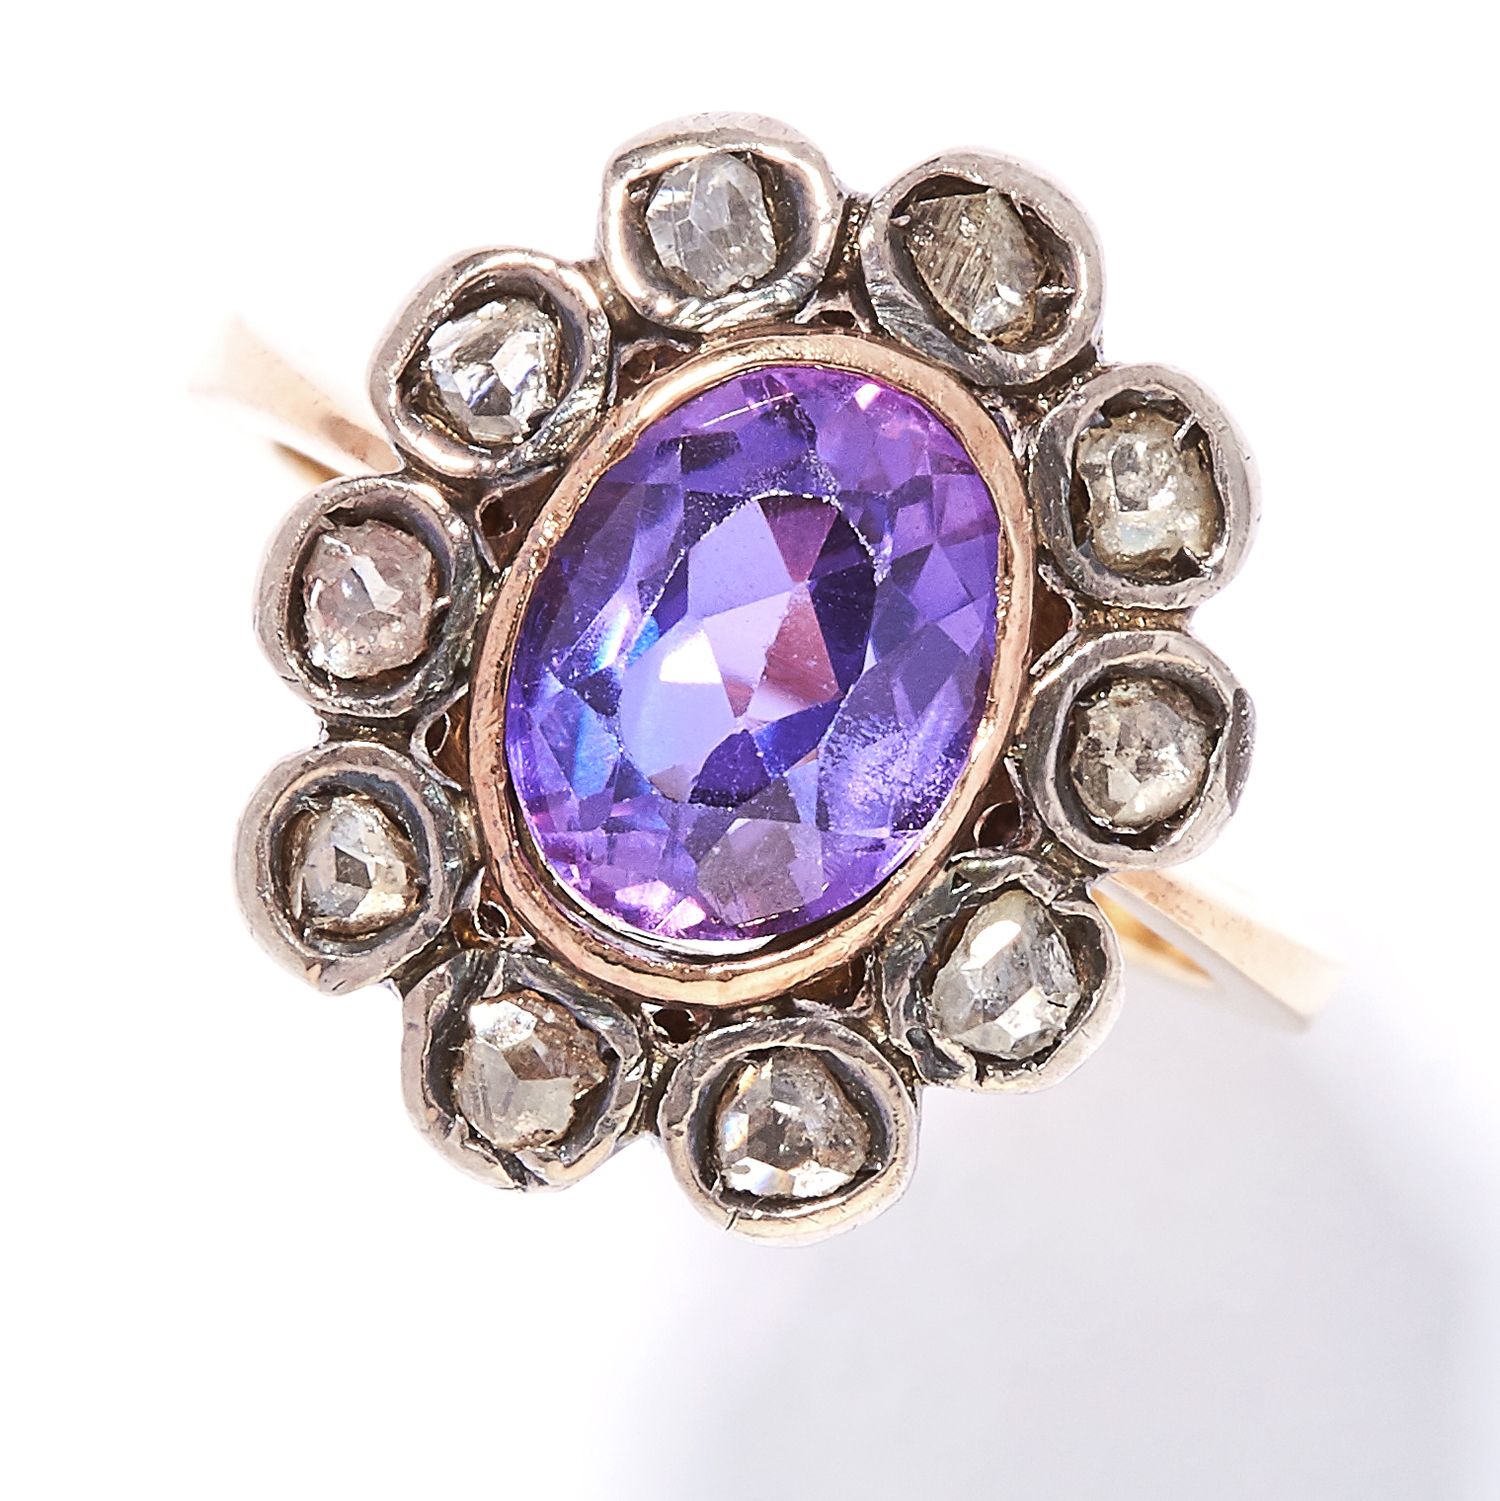 AMETHYST AND DIAMOND RING in yellow gold and silver, oval cut amethyst encircled by rose cut